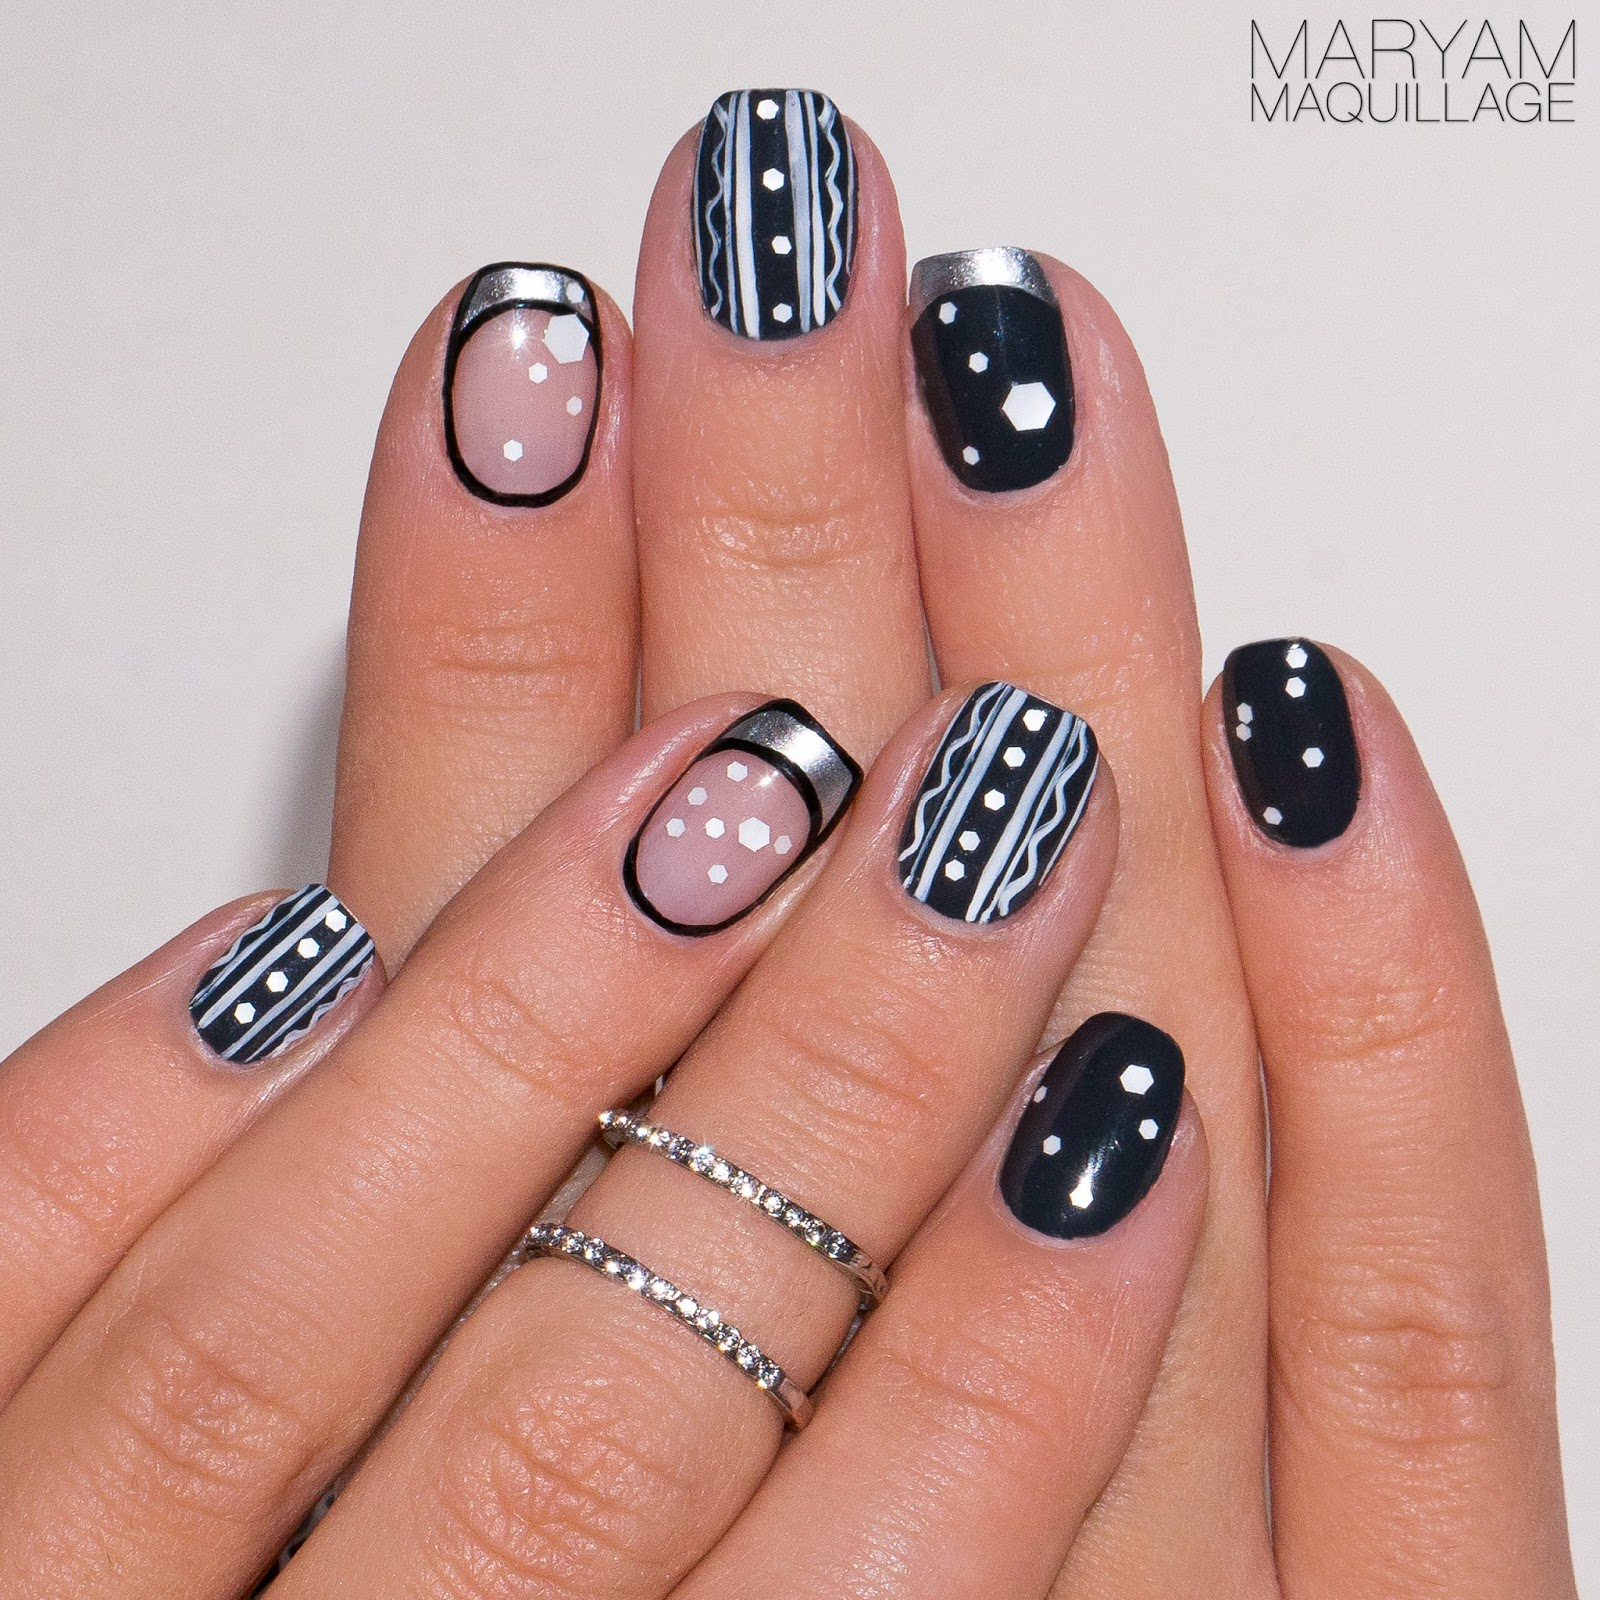 maryam maquillage nail art winter theme. Black Bedroom Furniture Sets. Home Design Ideas